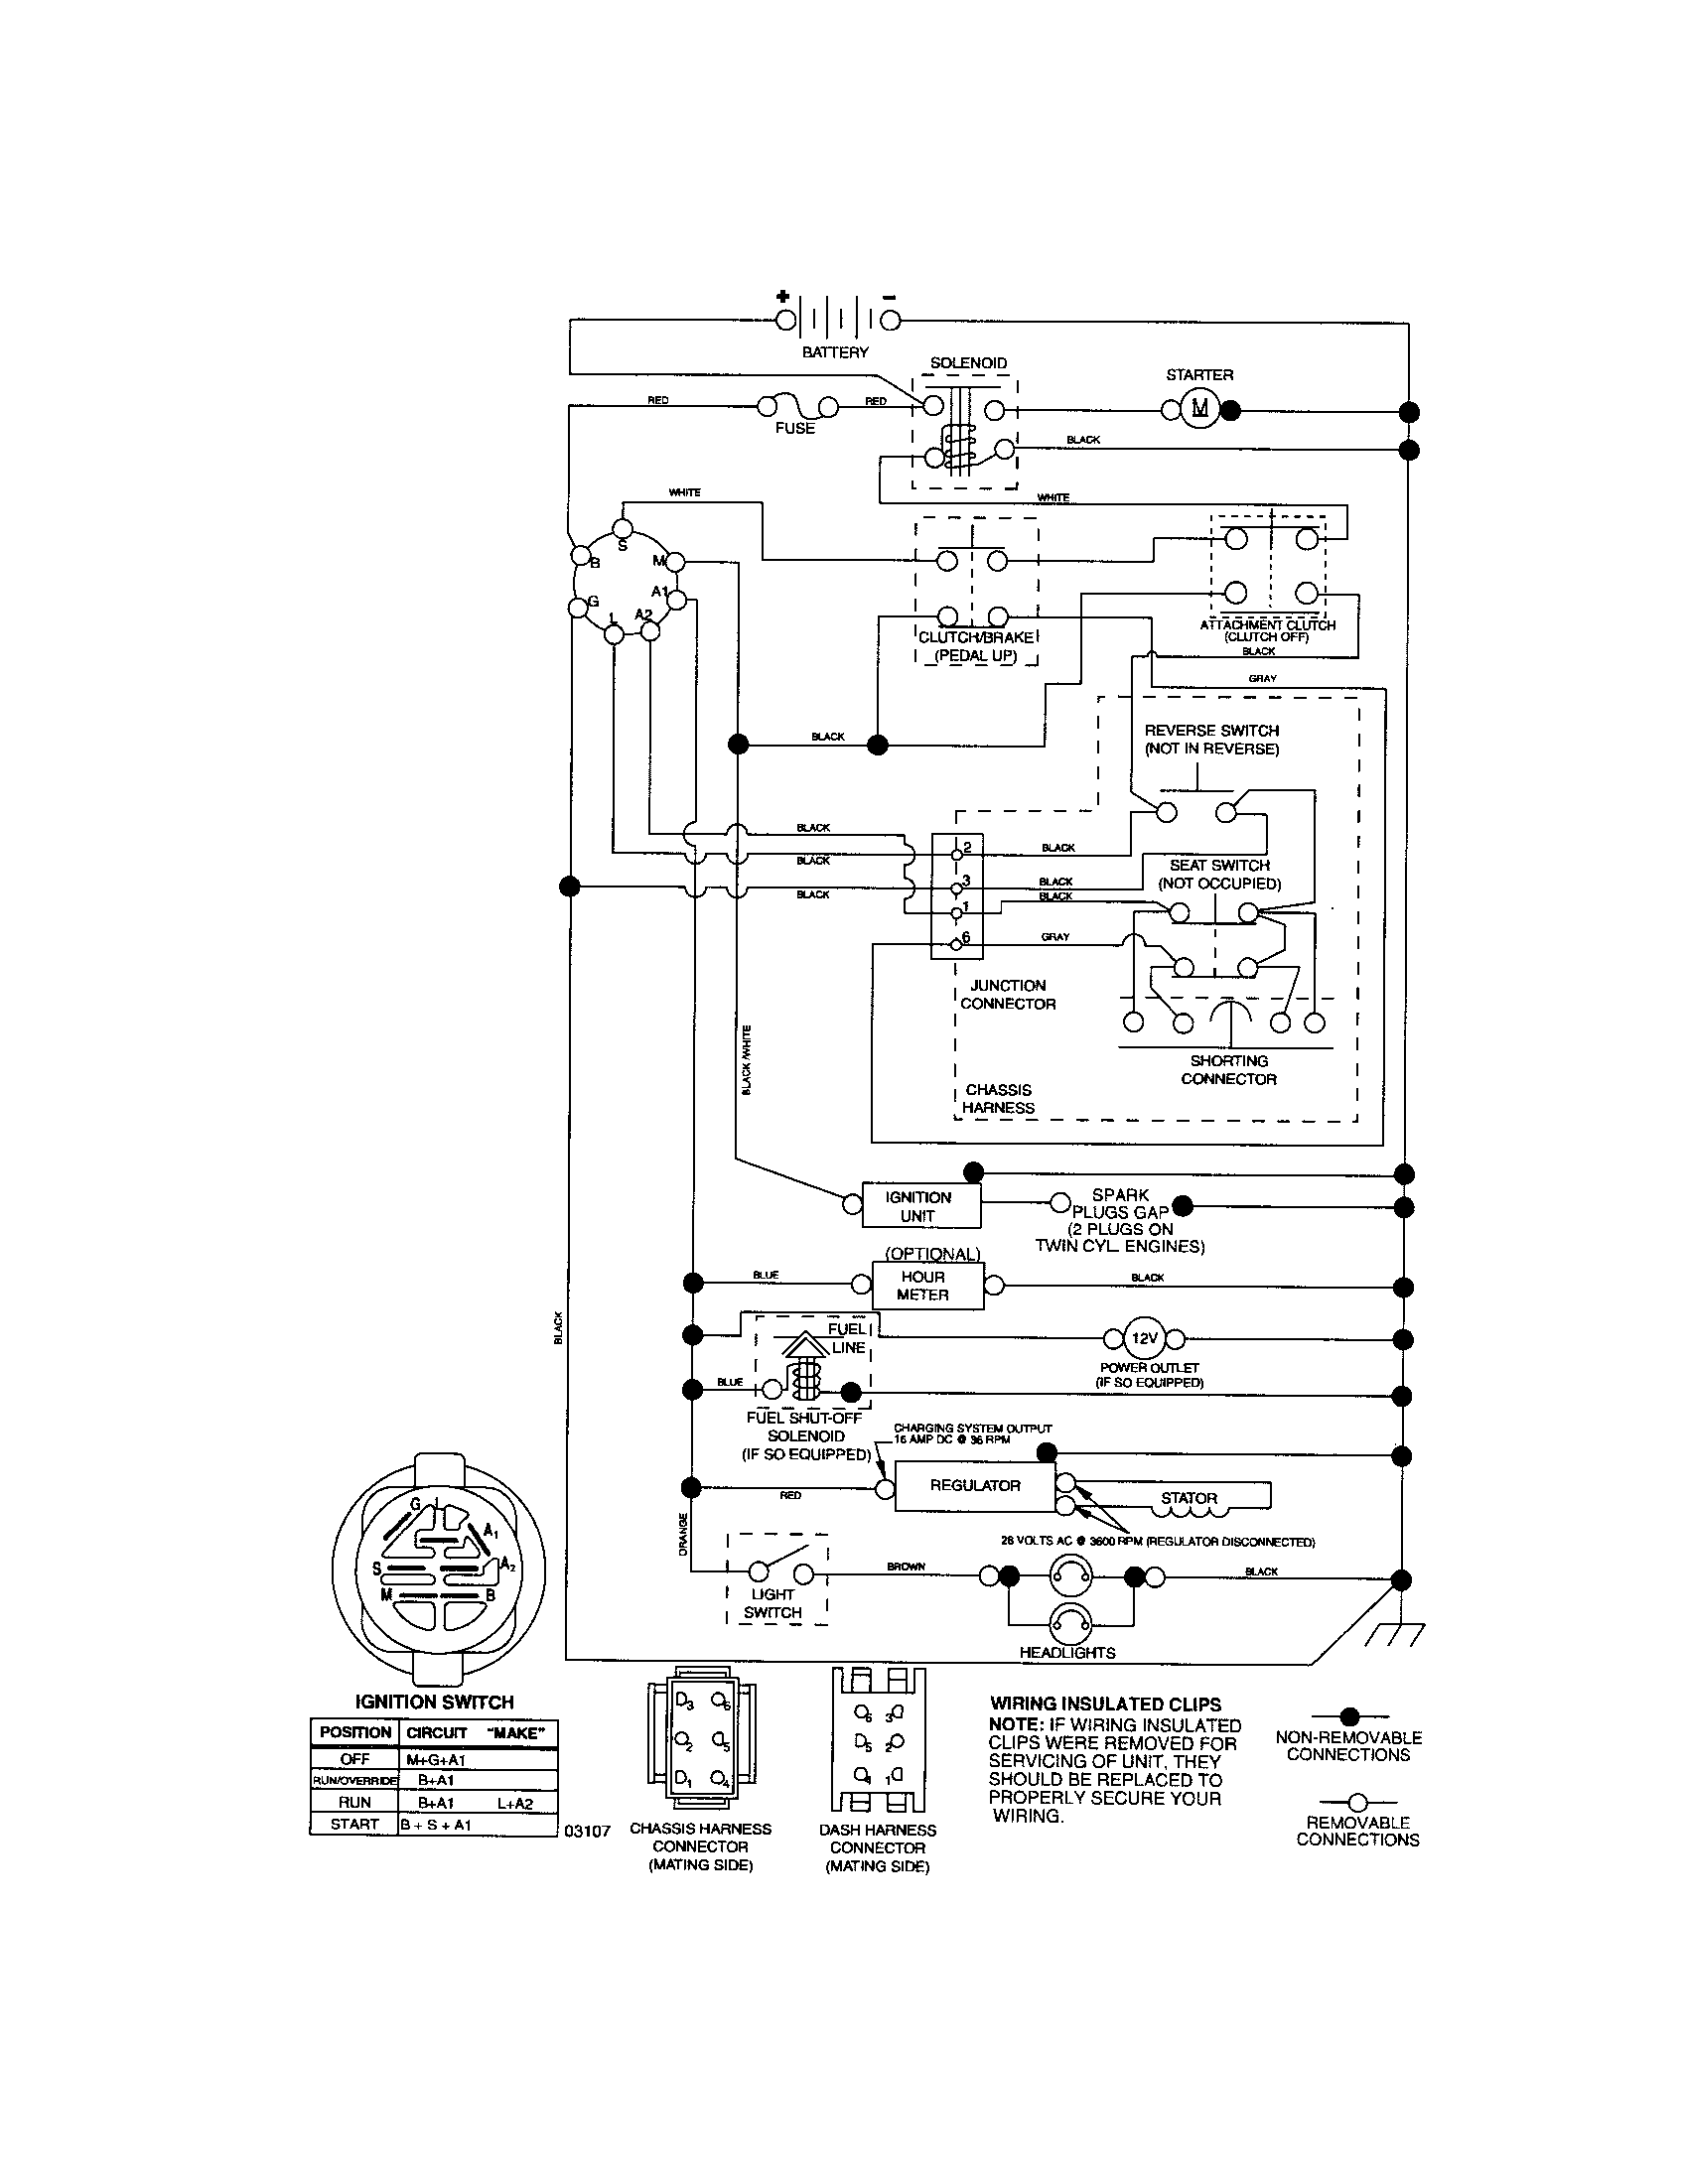 FF16 D140 Wiring Diagram | Wiring Resources John Deere D Wiring Diagram on john deere d110 diagram, john deere lx178 diagram, john deere riding mower diagram, john deere d125 diagram, john deere la110 diagram, john deere la145 diagram, john deere l100 diagram, john deere d100 diagram, john deere l130 diagram, john deere drive belt diagram,